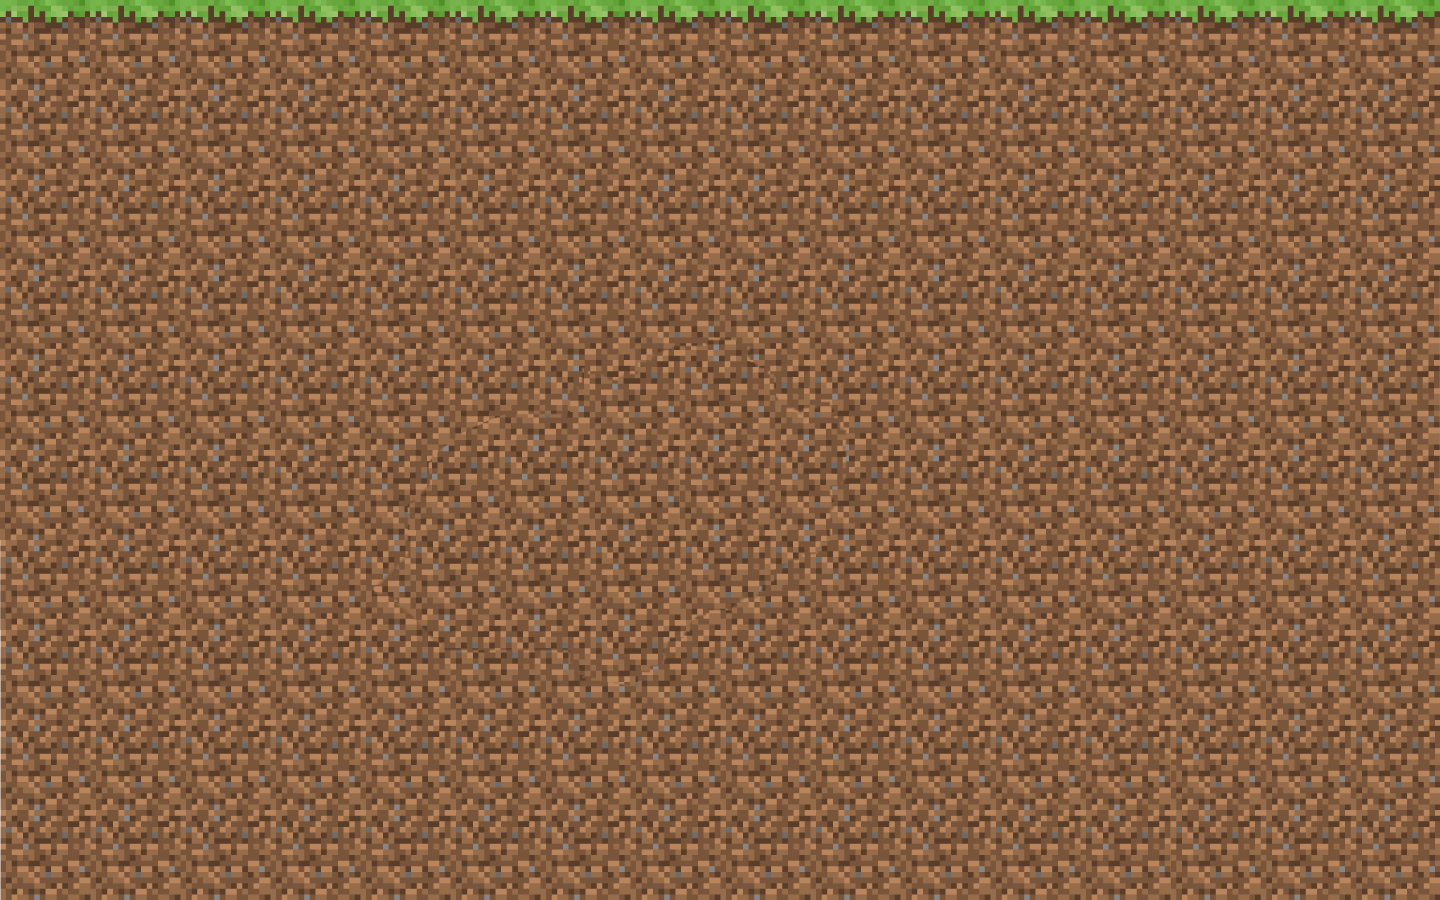 Best Wallpaper Minecraft Home Screen - MC-Background__1323925686  You Should Have_1001865.jpg